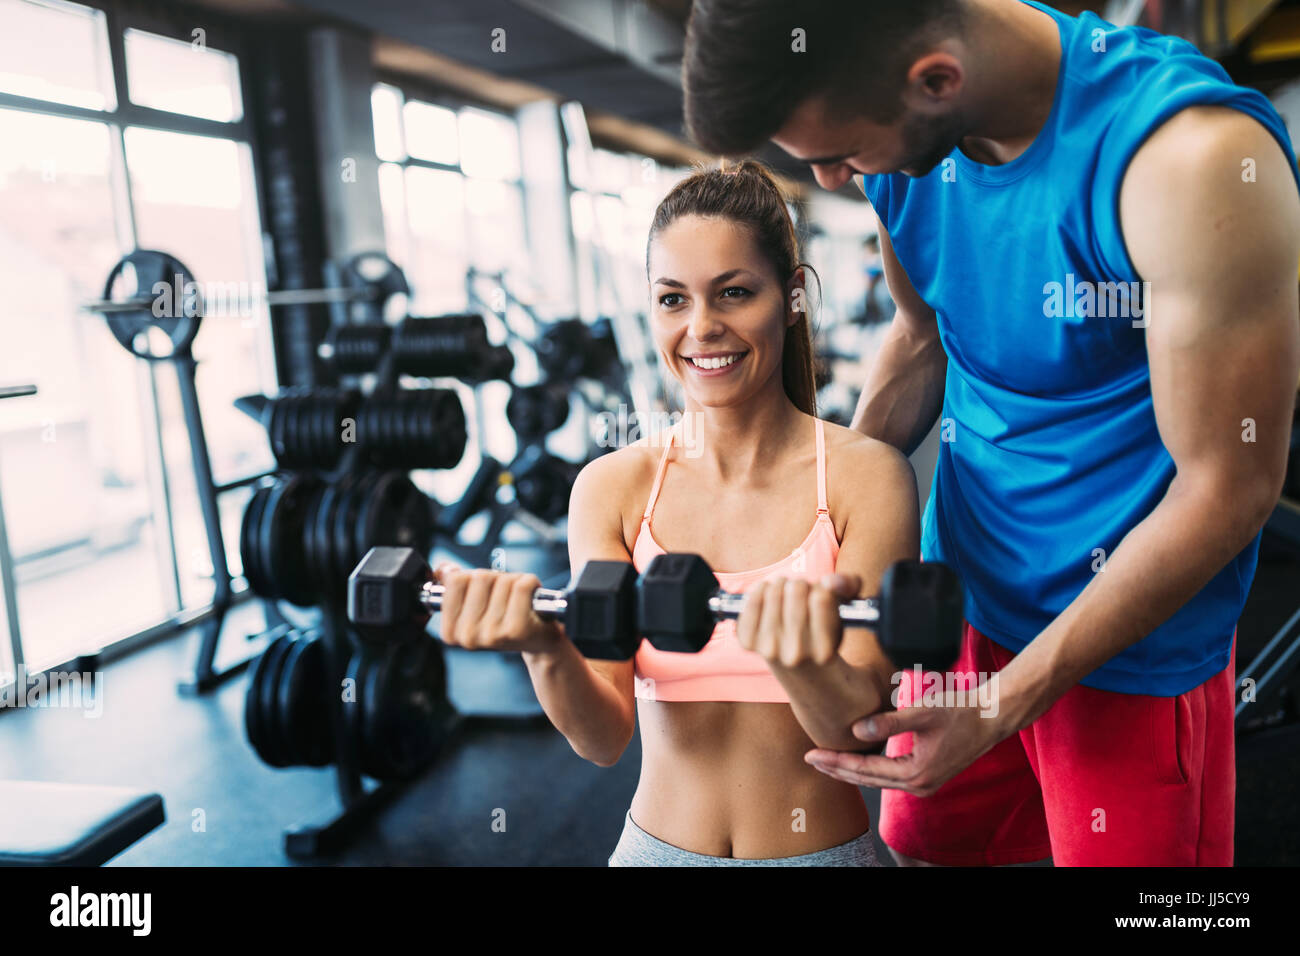 Beautiful woman doing exercises in gym with personal trainer - Stock Image